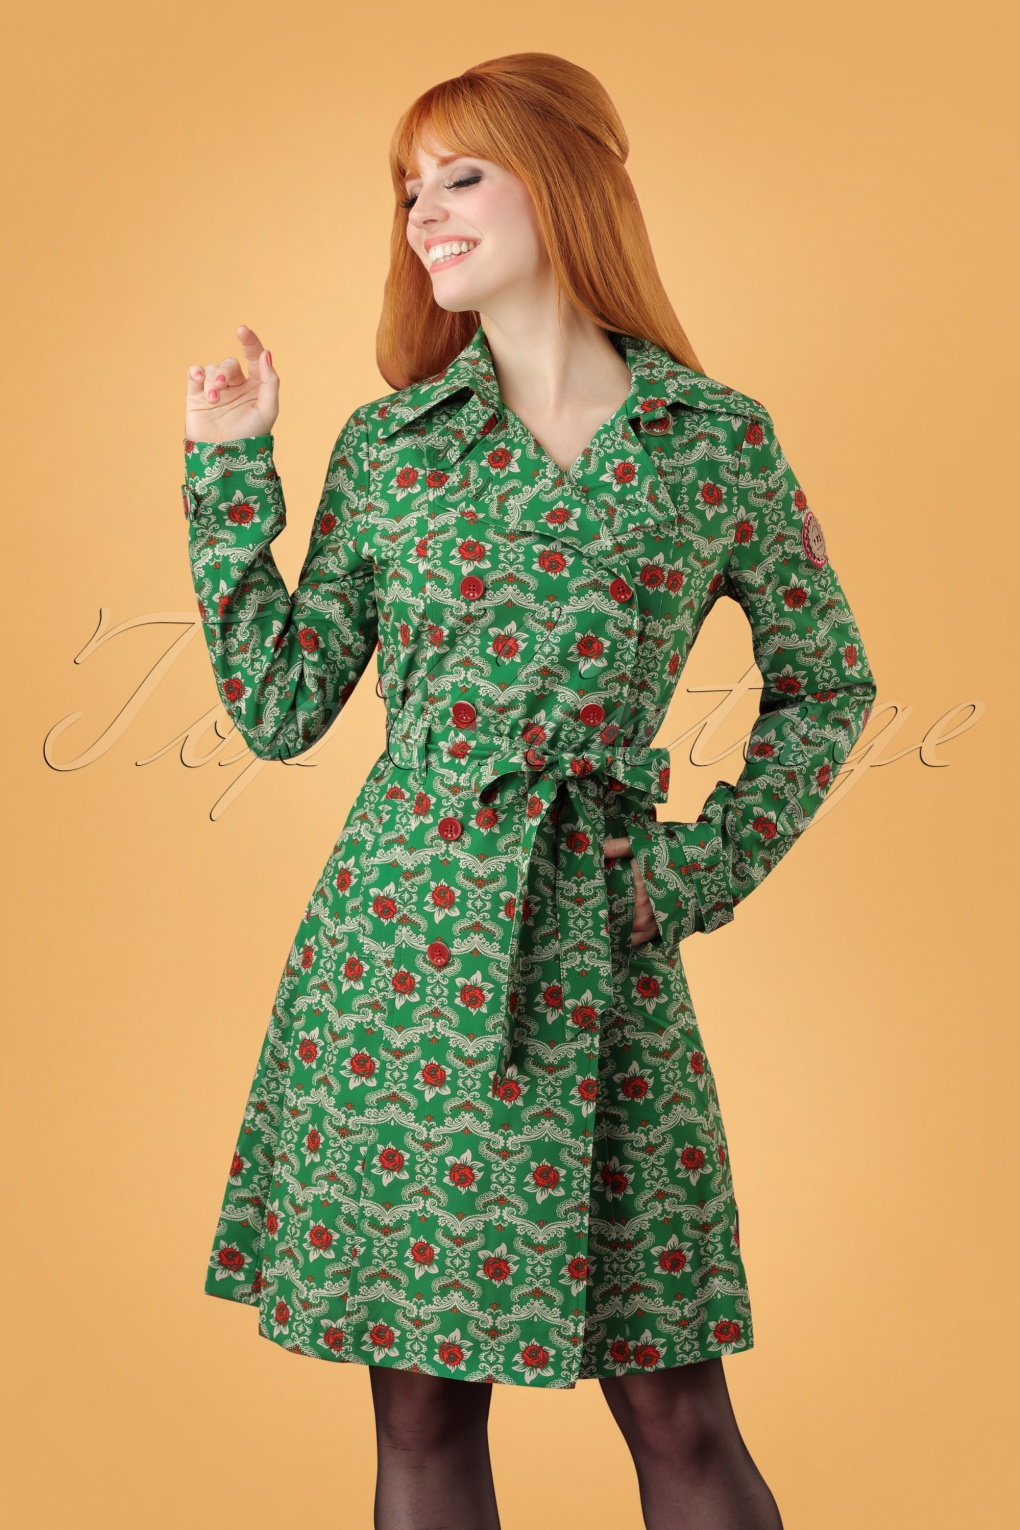 1960s Style Dresses, Clothing, Shoes UK 60s Casablanca Souvenir Trench Coat in Highnoon Saloon Green £70.48 AT vintagedancer.com